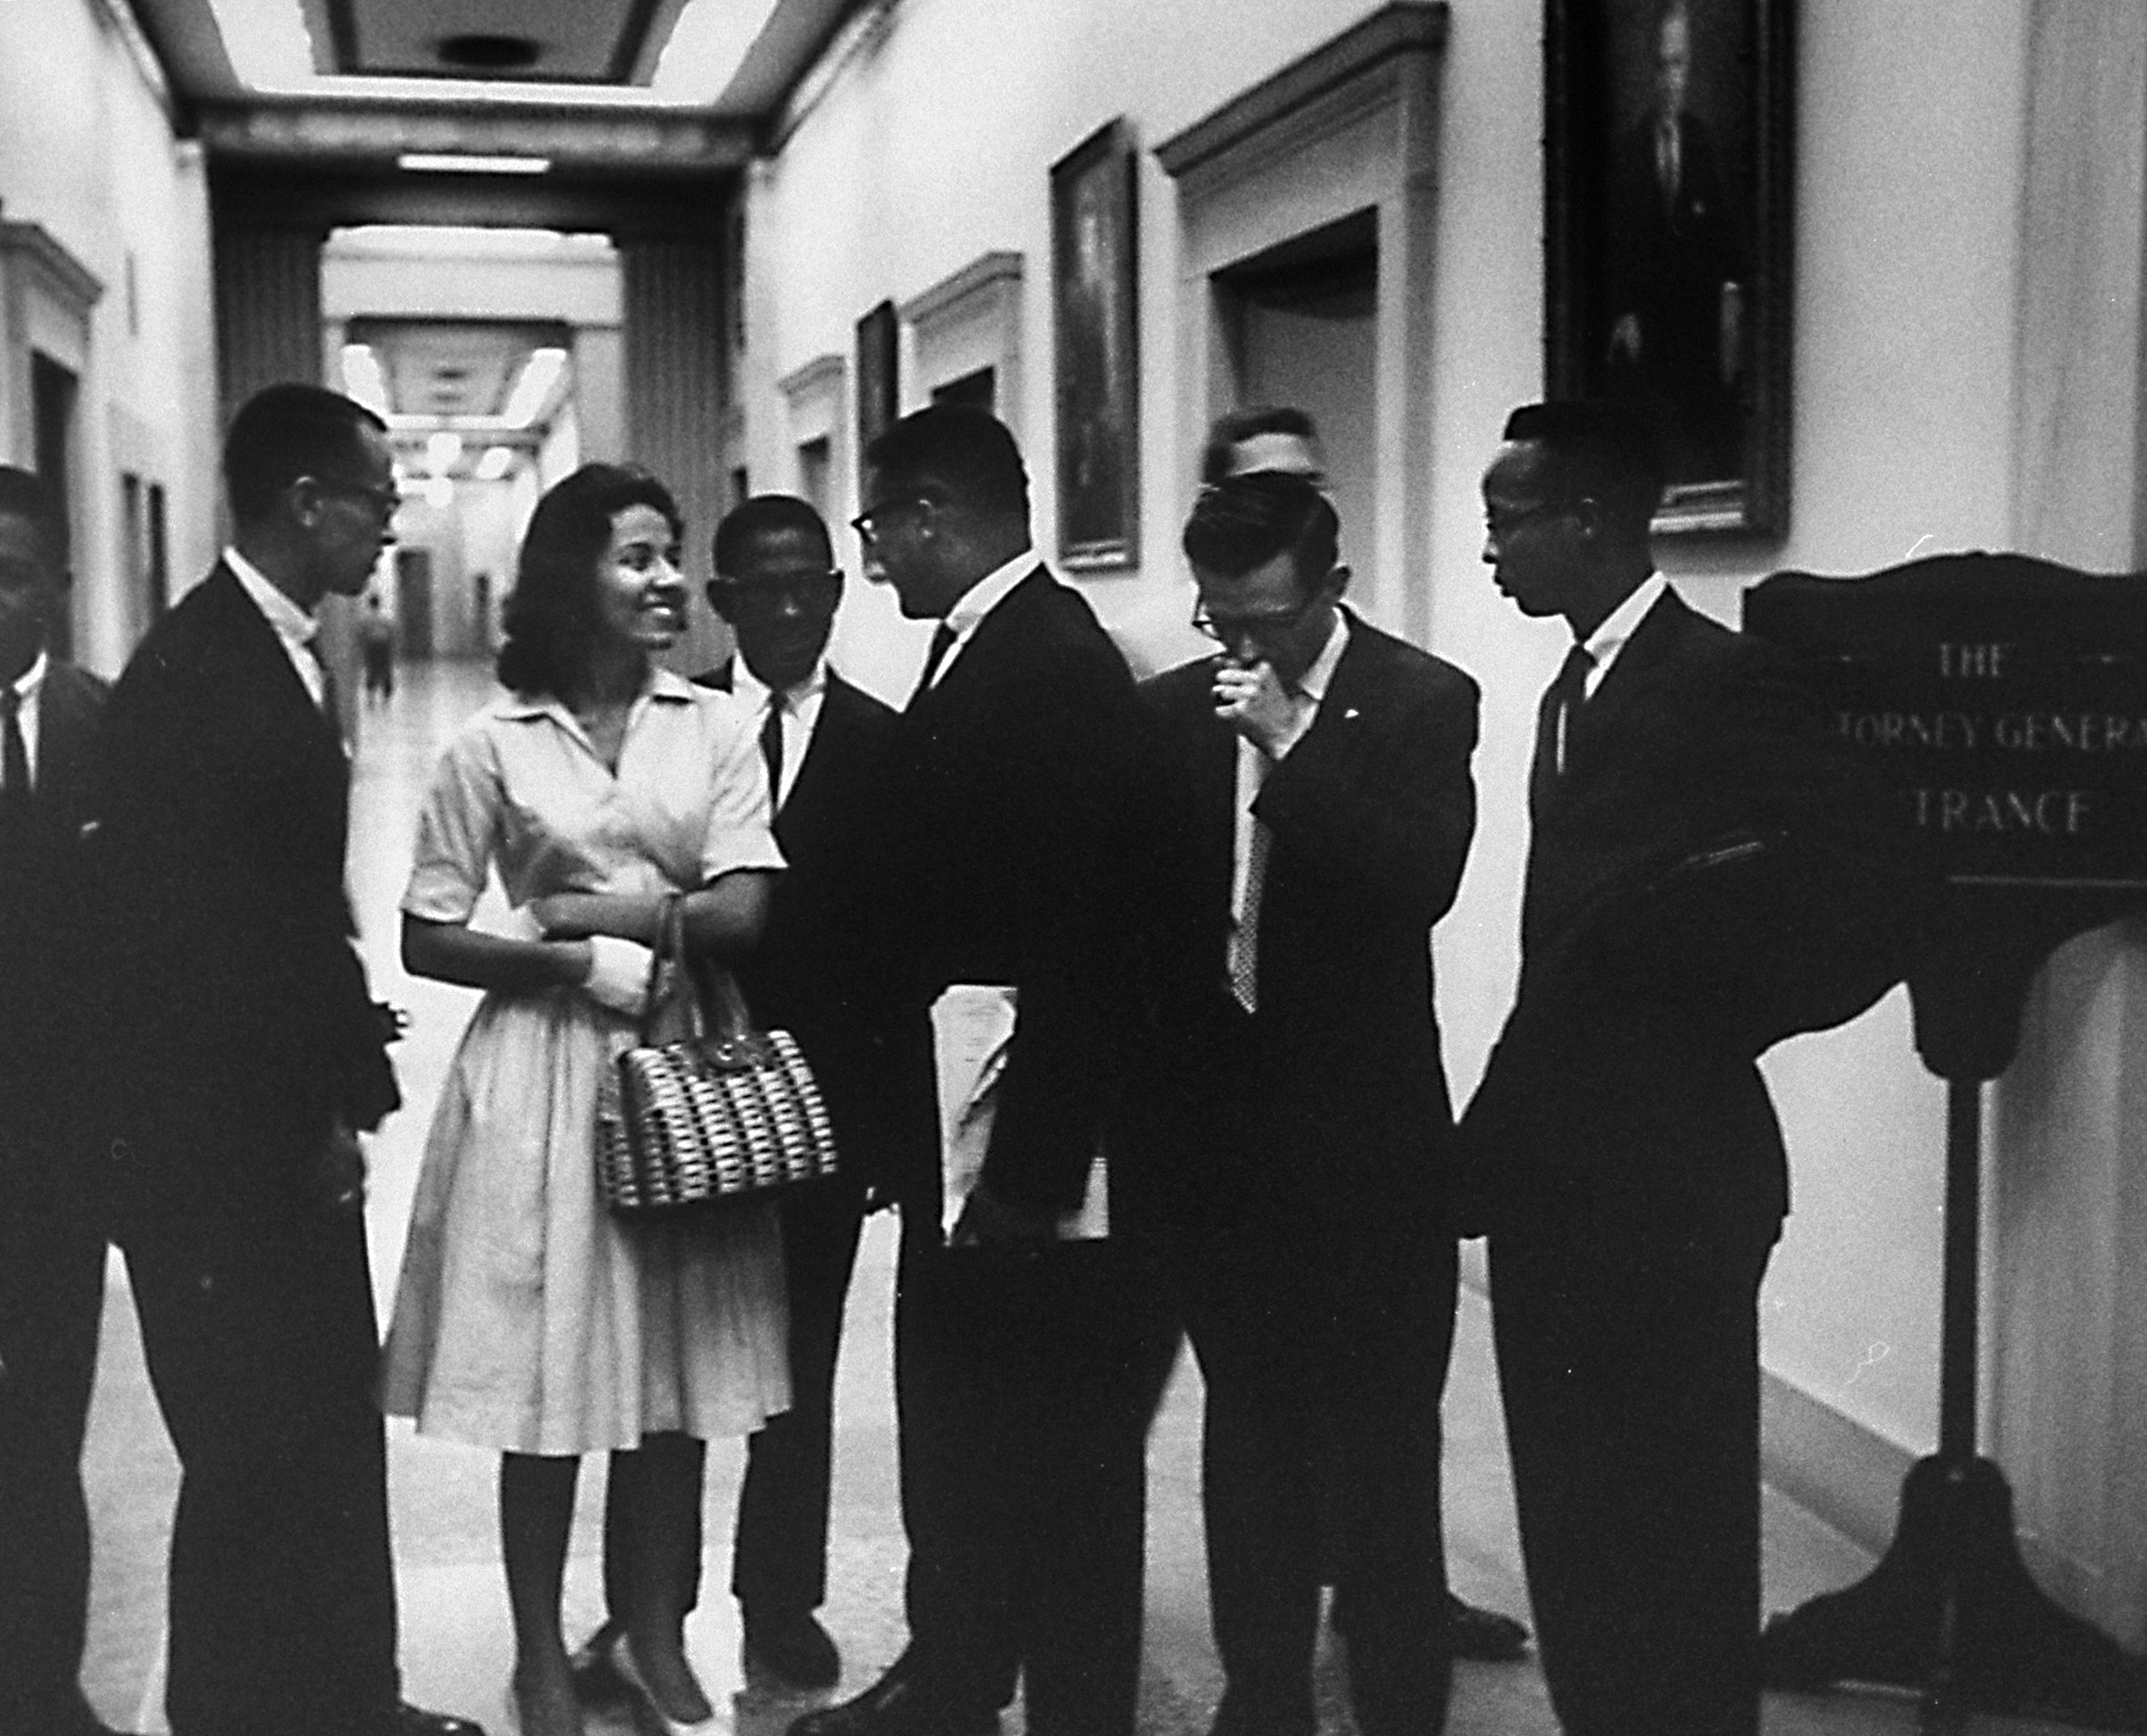 Diane Nash and other Freedom Riders. (Credit: Ed Clark/The LIFE Picture Collection/Getty Images)